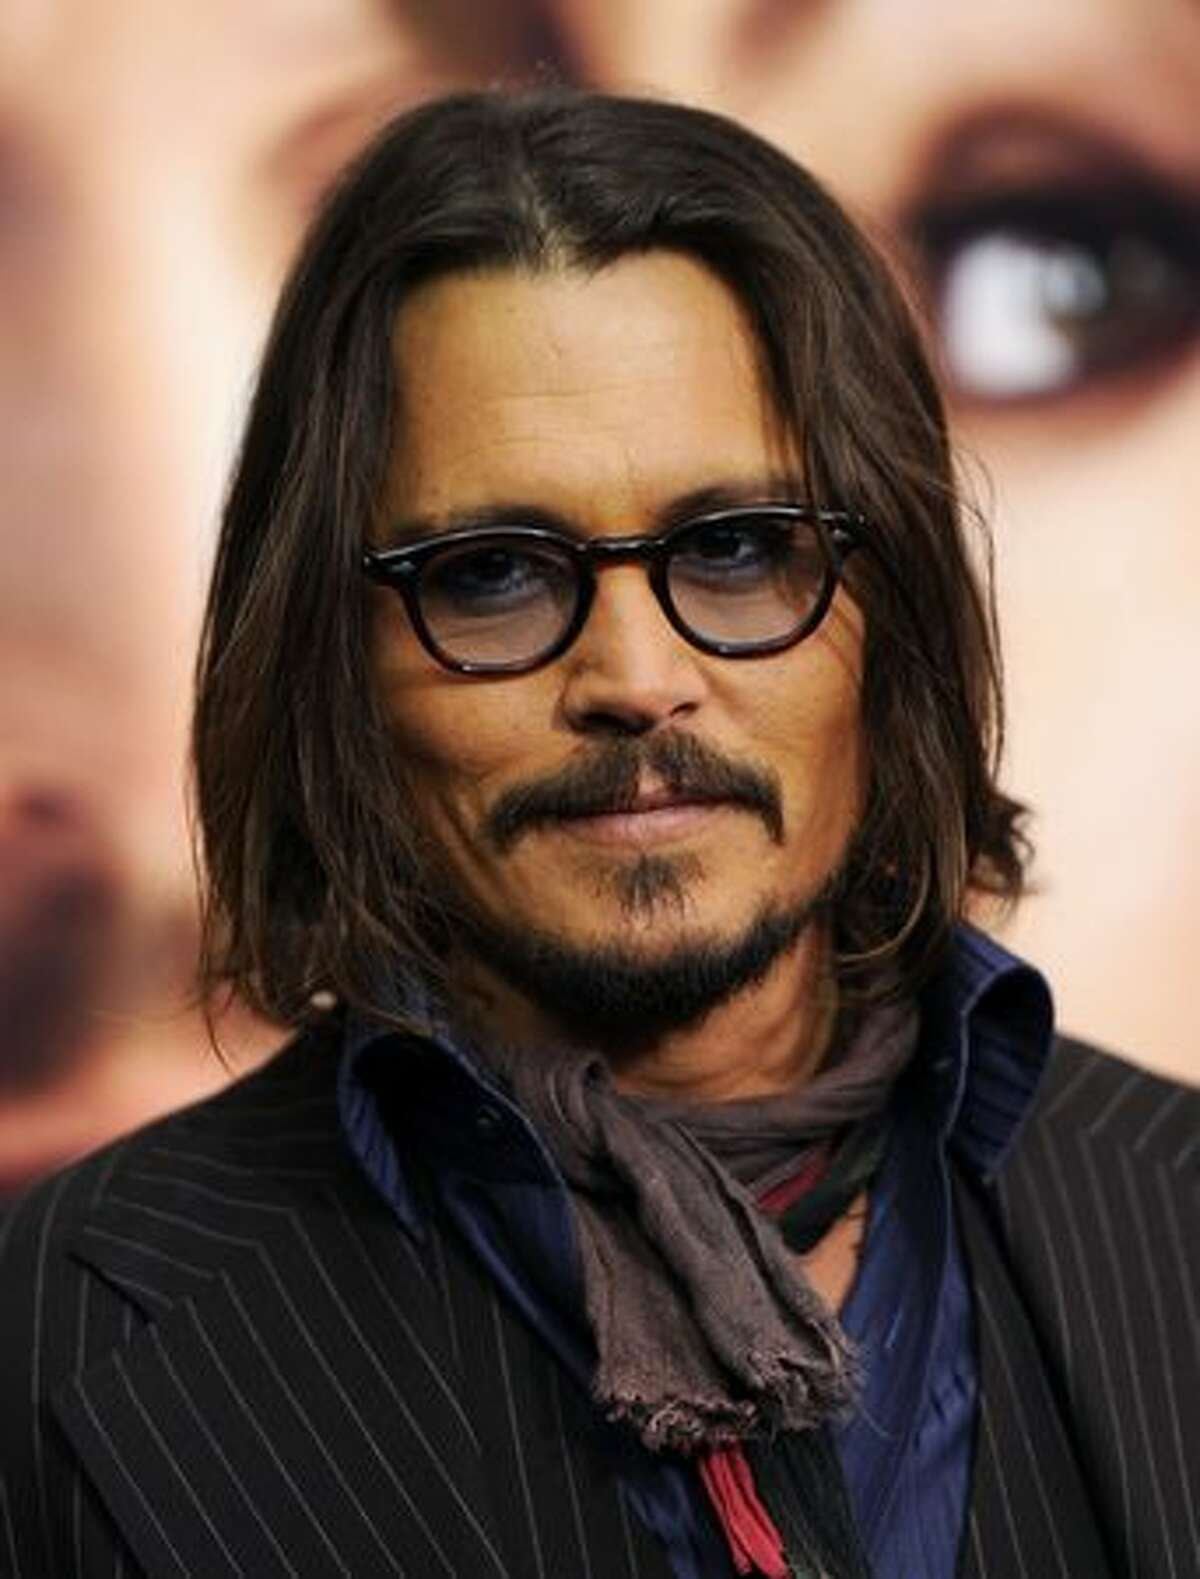 Actor Johnny Depp attends the World premiere of